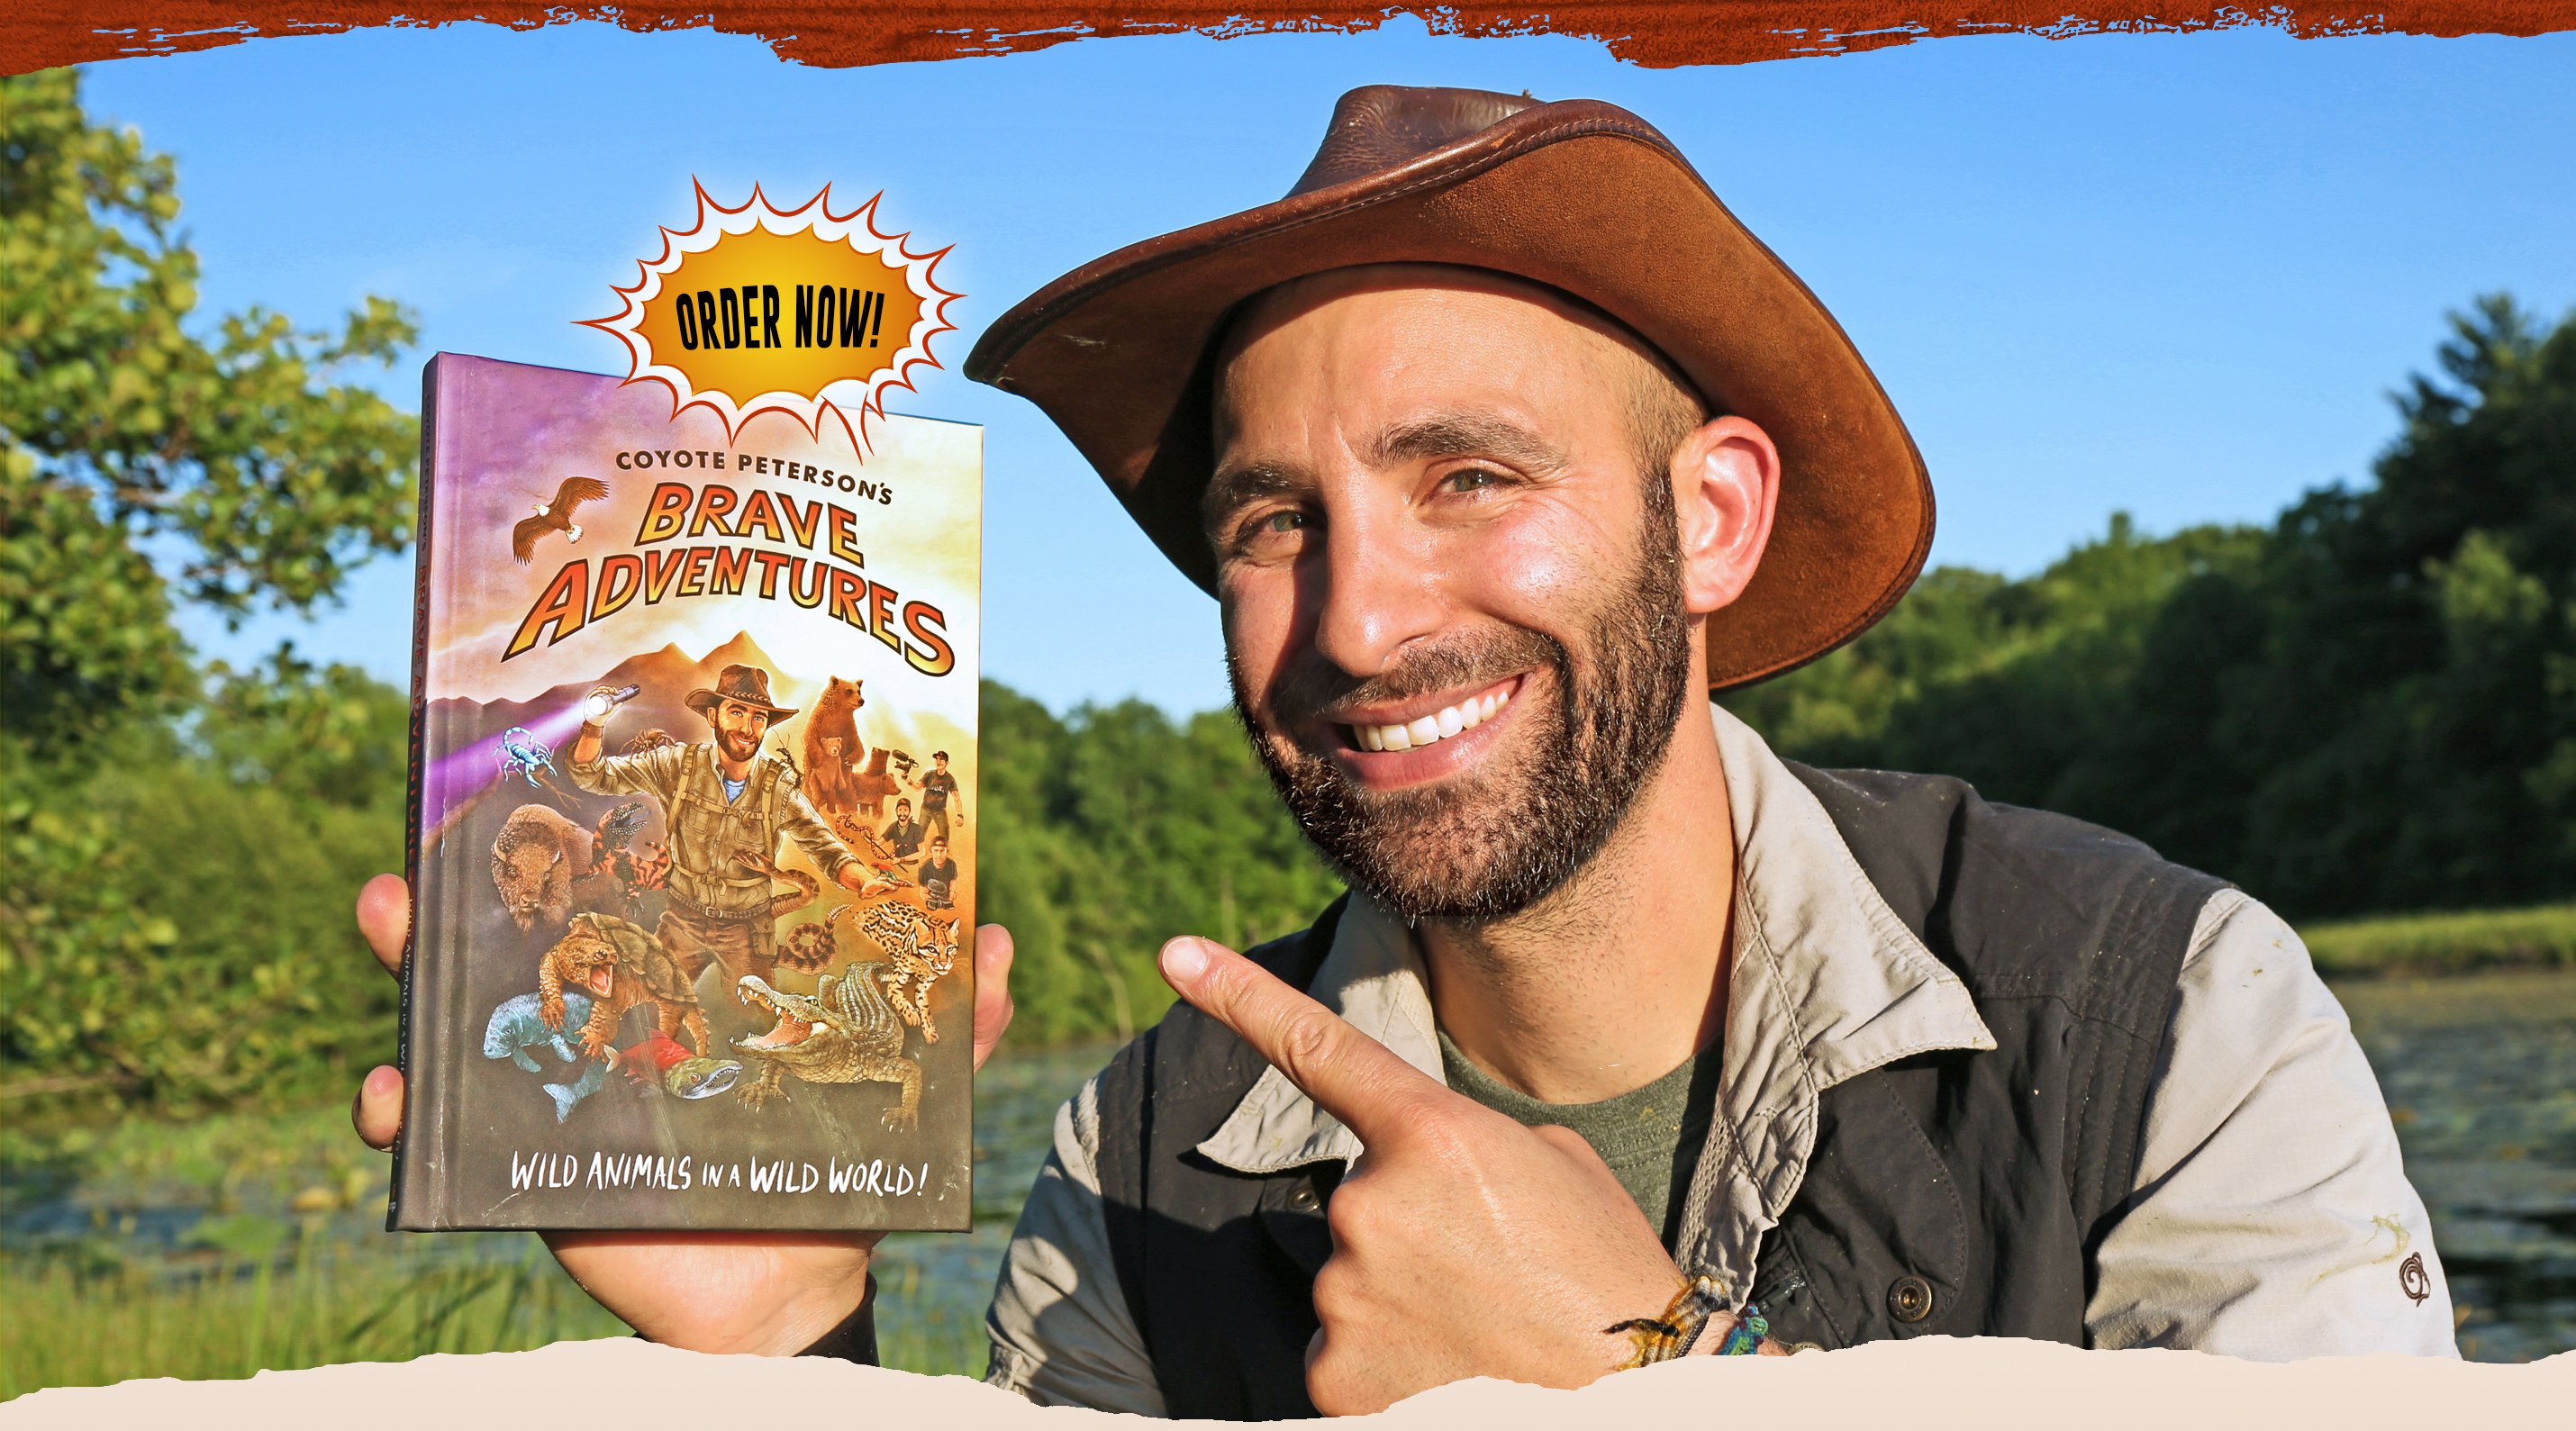 Coyote Peterson's Brave Adventures: Wild Animals in a Wild World. Order Now!